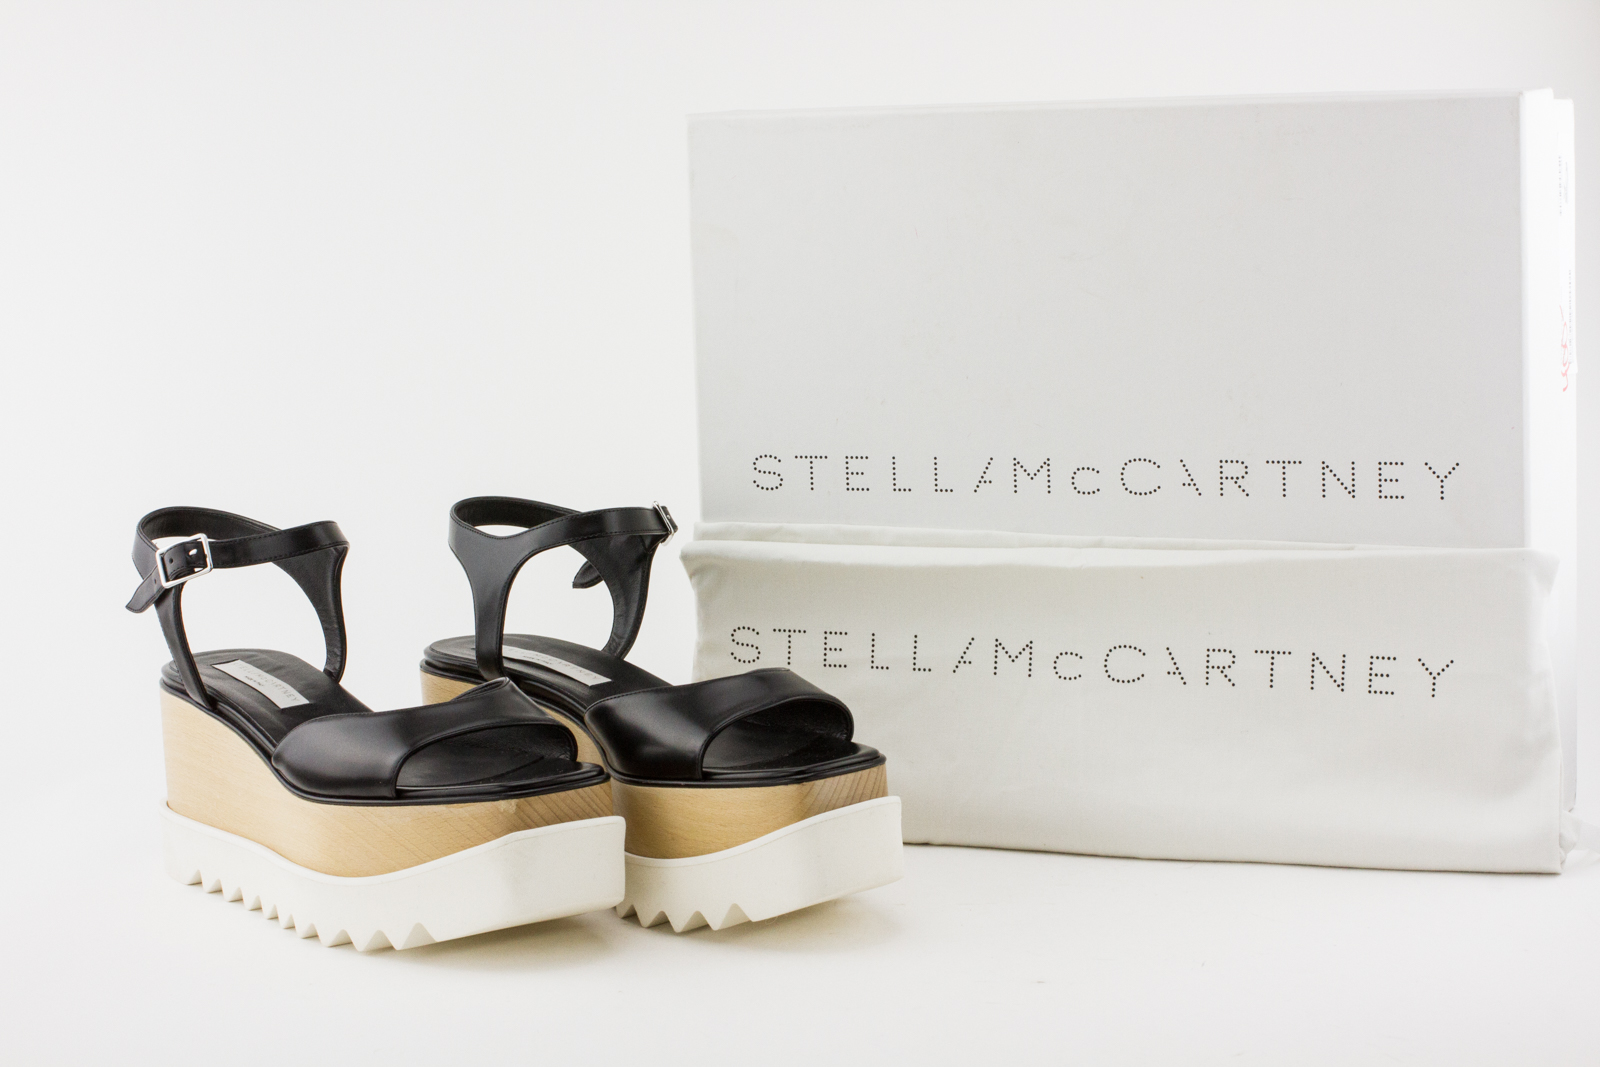 fdd67e5a106 STELLA MCCARTNEY Black Leather Platform Sandals with Wood Accent and Rubber  Sole